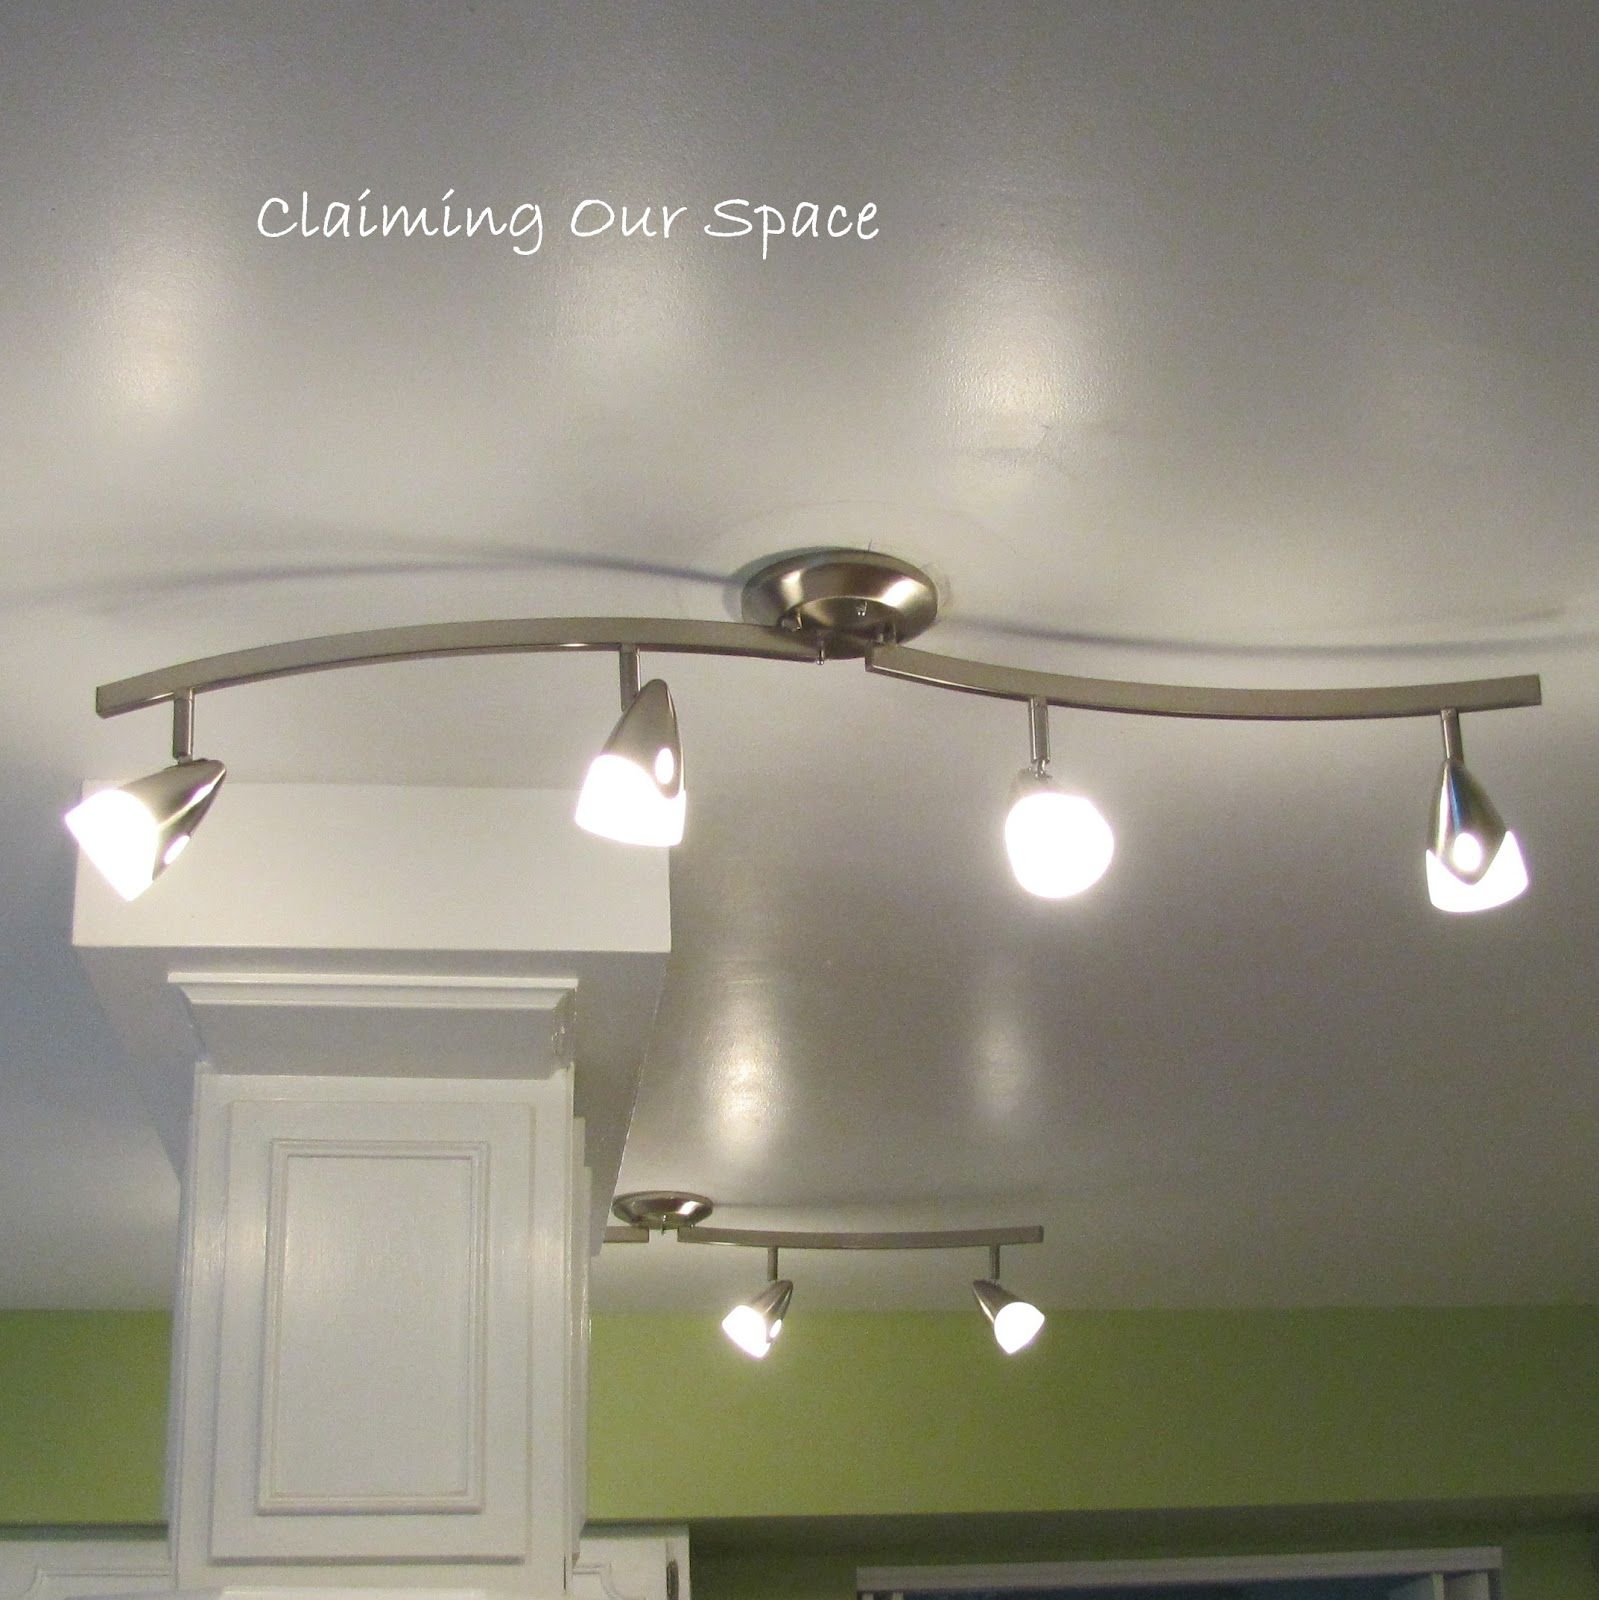 overhead kitchen lighting ideas. 11 stunning photos of kitchen